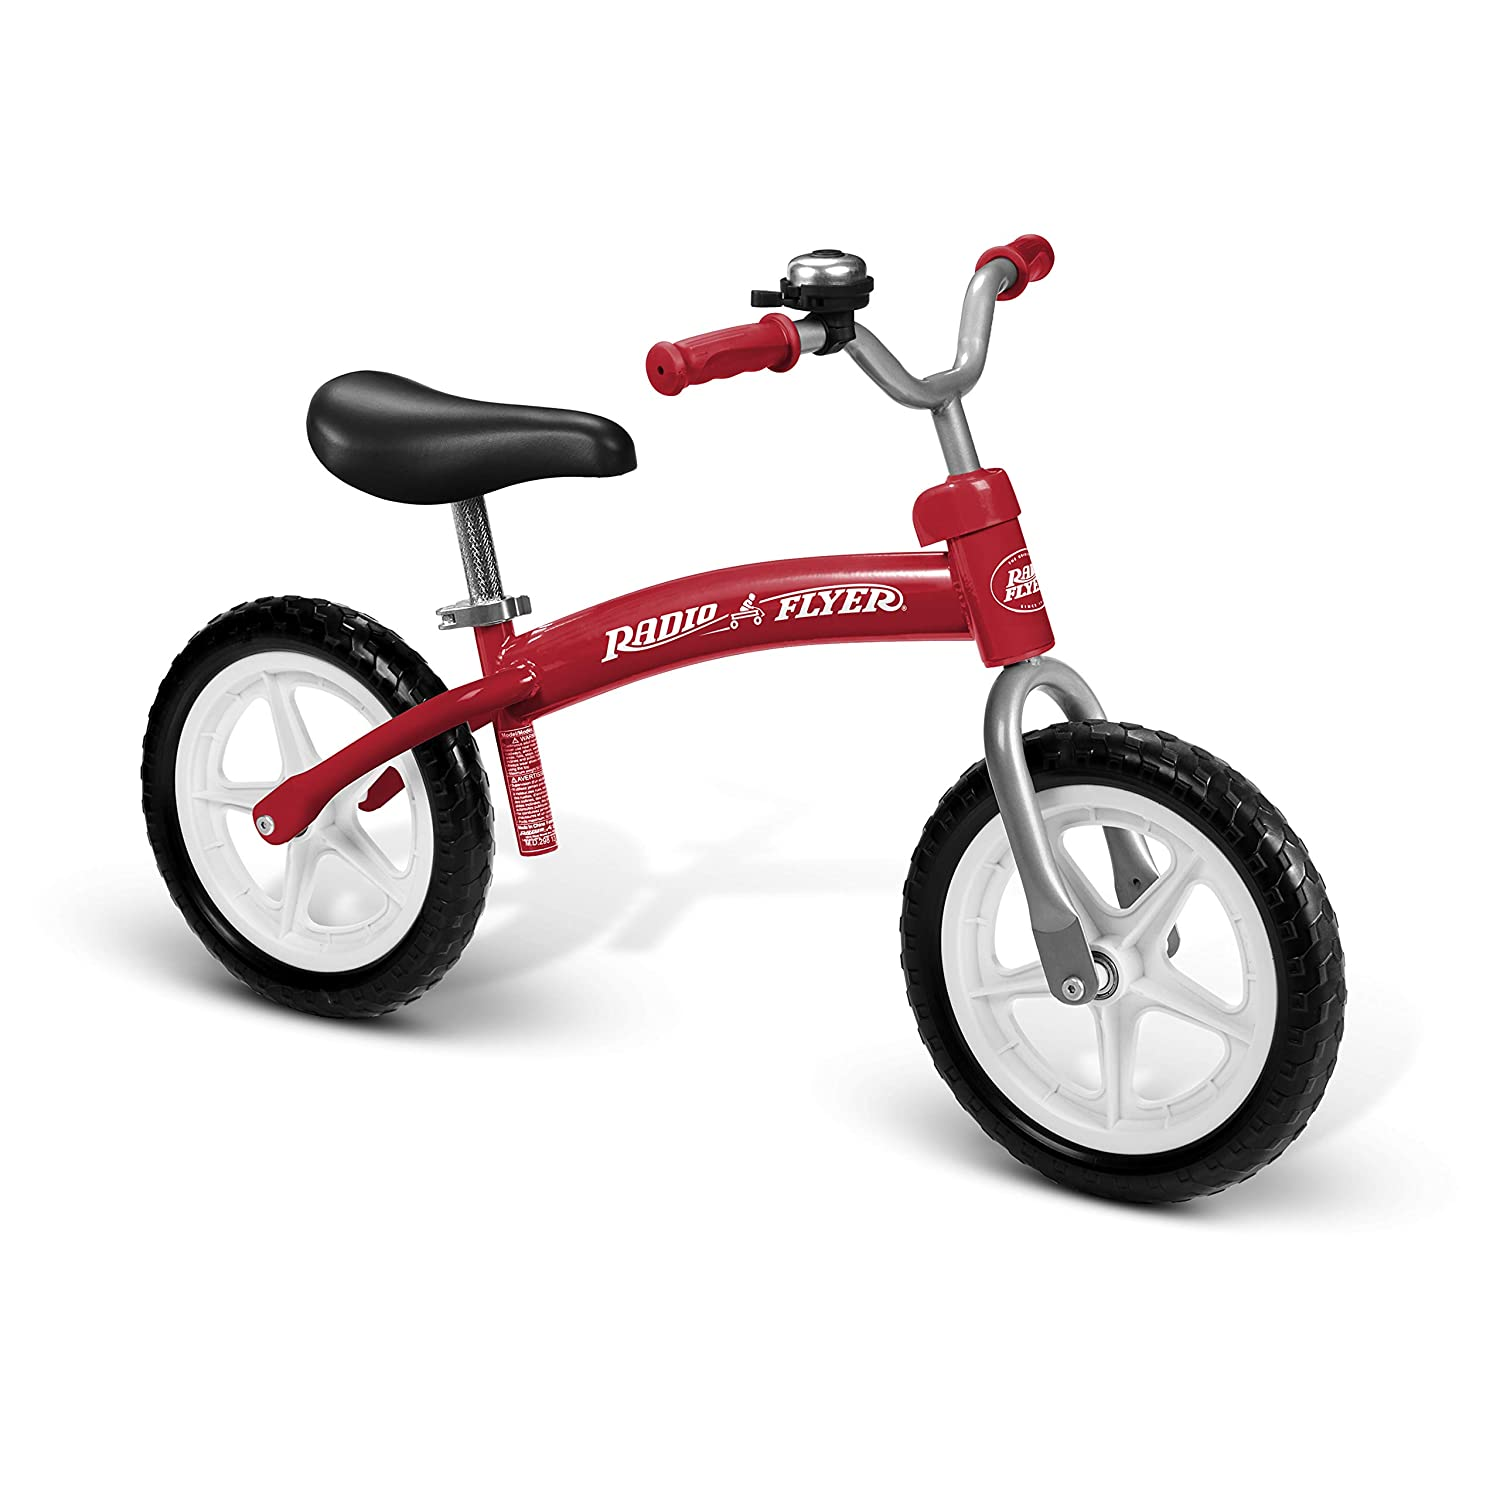 Top 11 Best Balance Bikes for Toddlers (2019 Reviews) 4